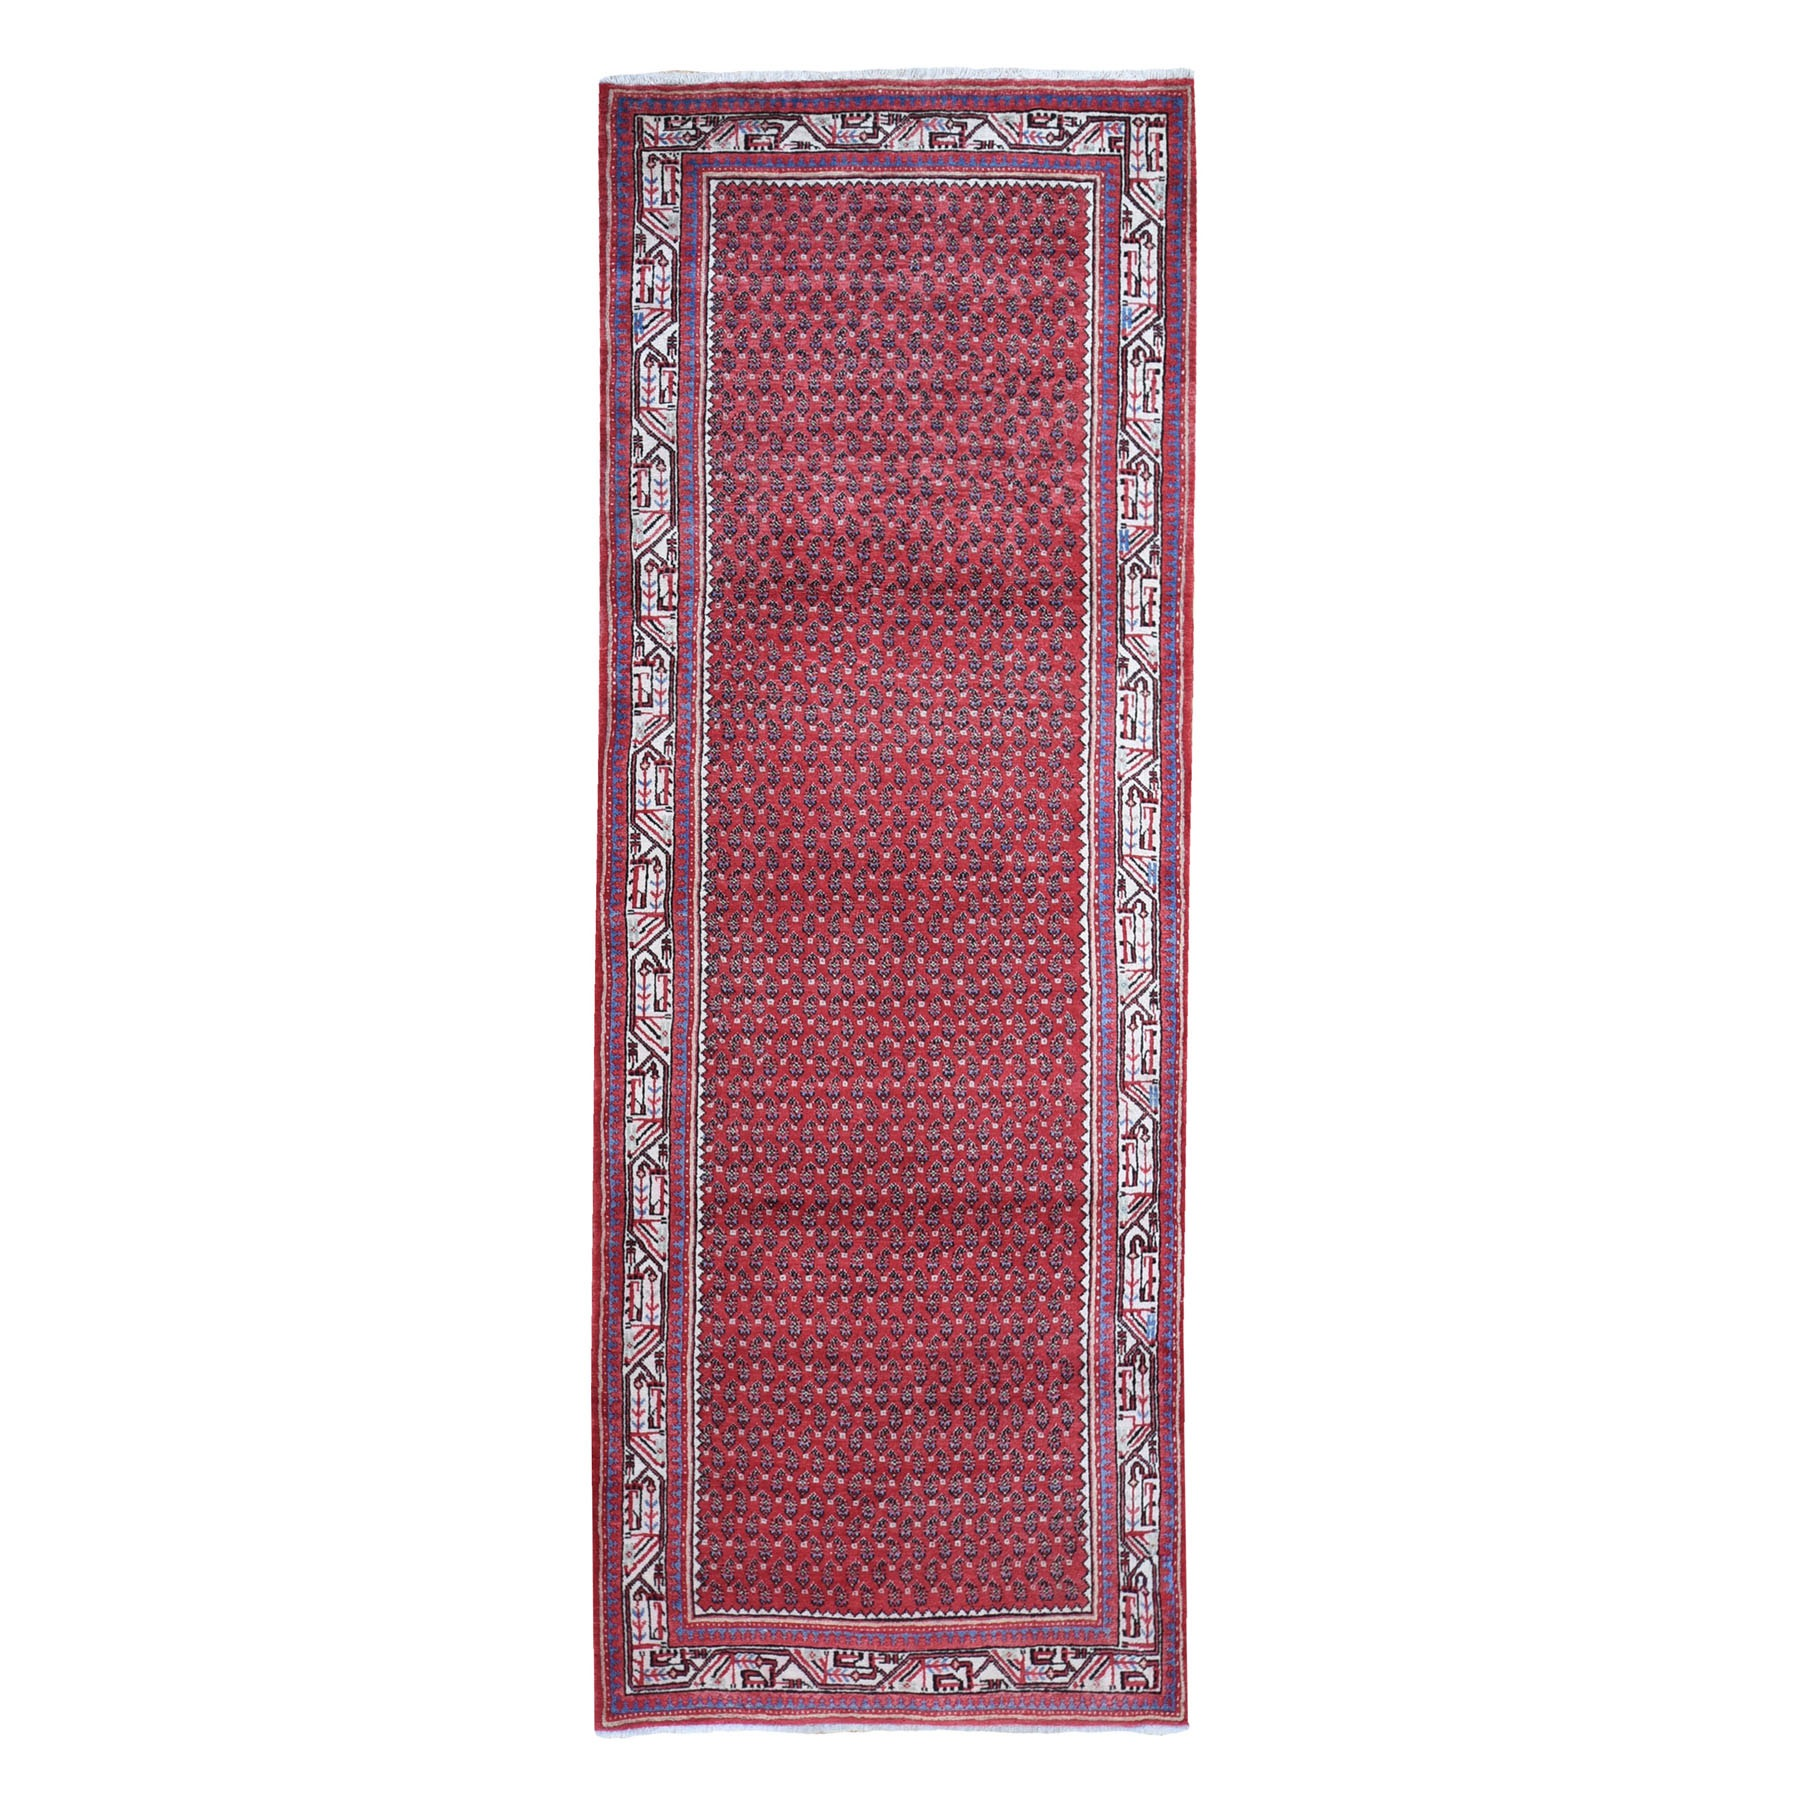 "3'8""x9'9"" Red New Persian Sarouk Mir Pure Wool Wide Runner Hand Woven Oriental Rug"